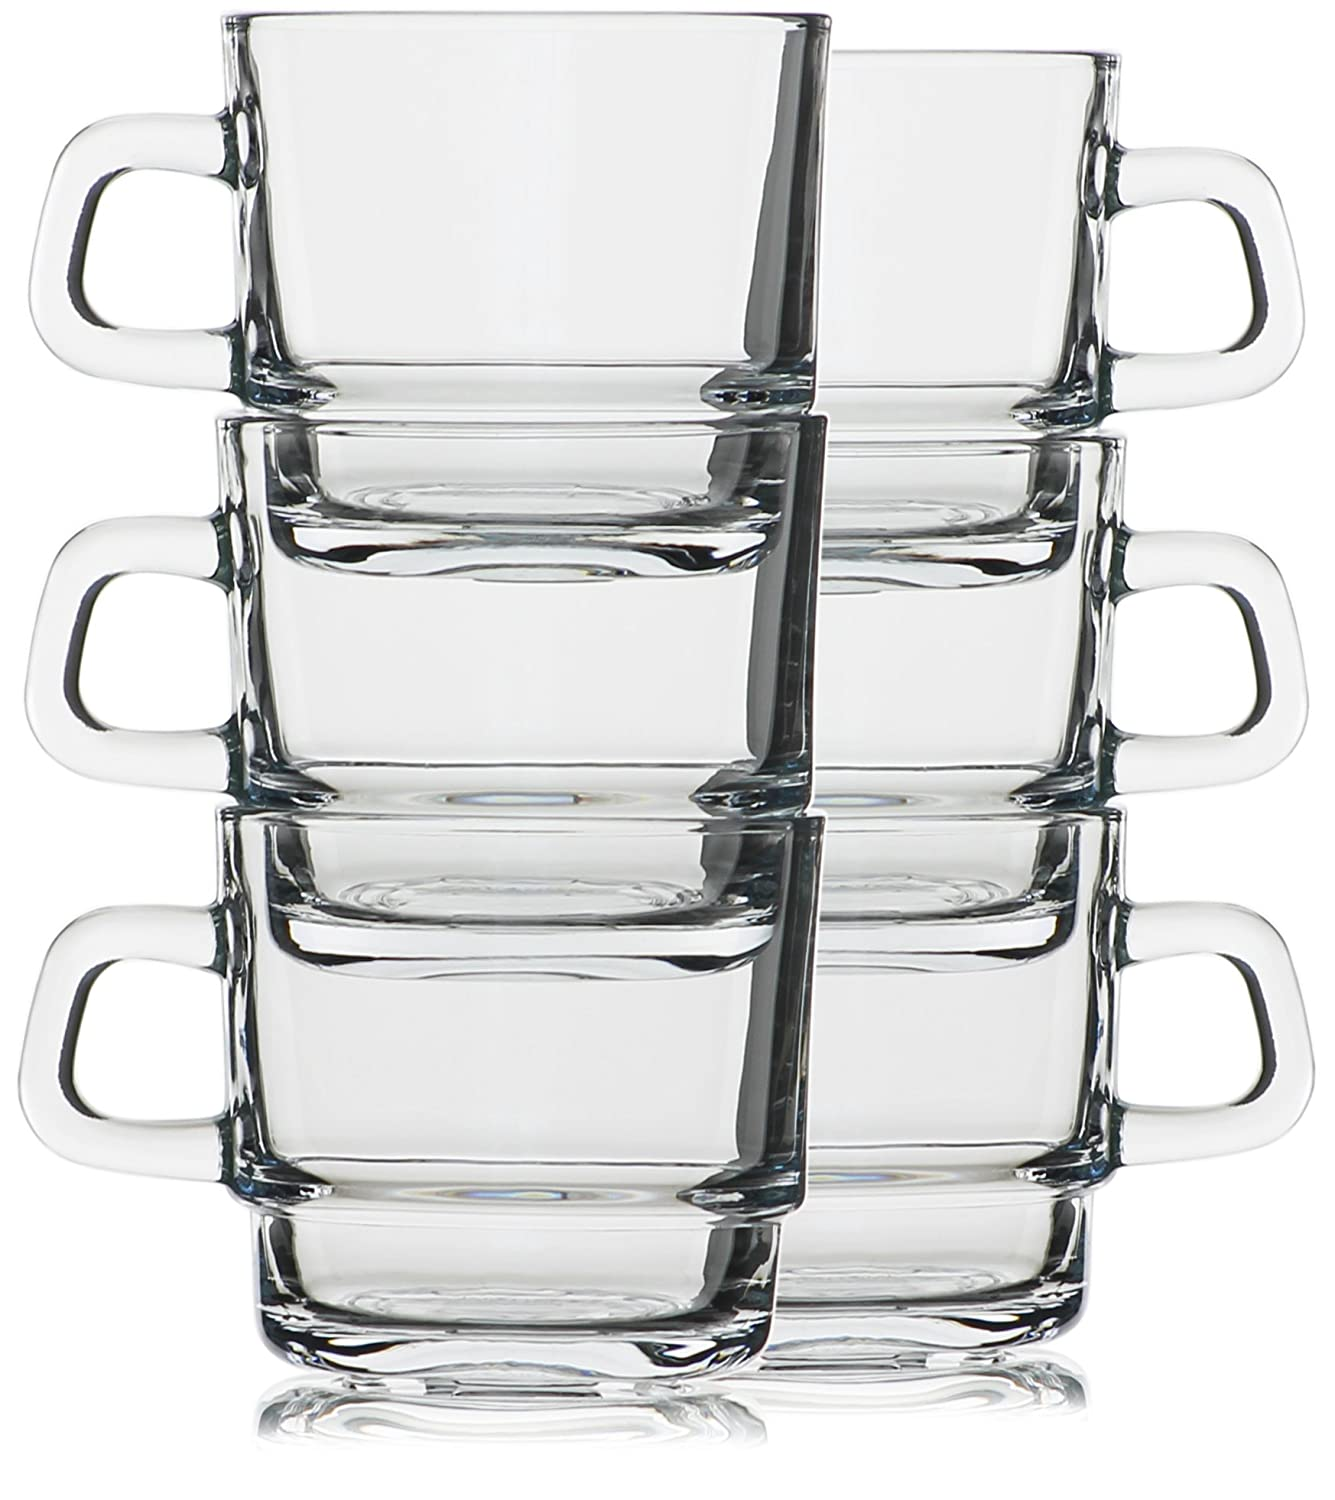 Hikari 7oz Espresso/Tea Stackable Glass Cups; Keeps Beverages Hot. Perfect for Nespresso, Coffee, Cappuccino or Any Other Short Drinks, Set of 6 (Gift Boxed)